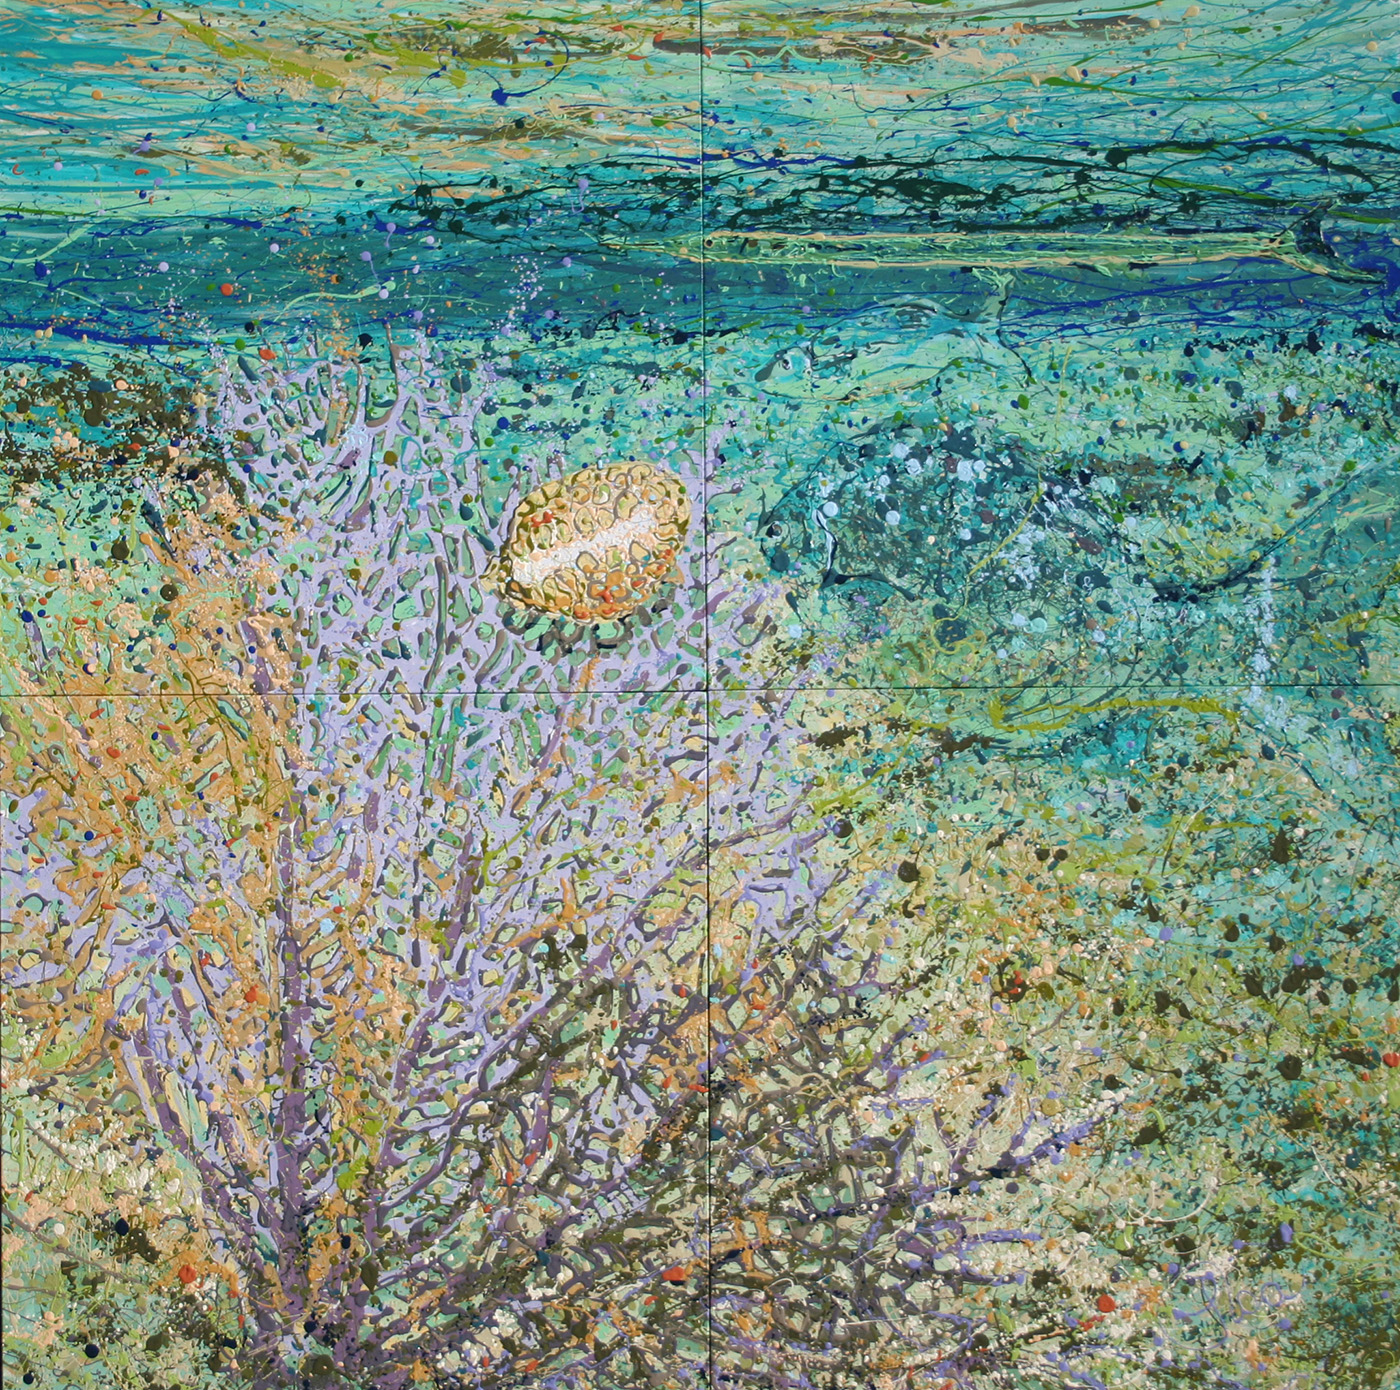 Underwater Caribbean Scene in Mexico created from Latex Enamel on Gallery Wrapped Canvas by Fort Collins, Colorado Artist  Lisa Cameron Russell